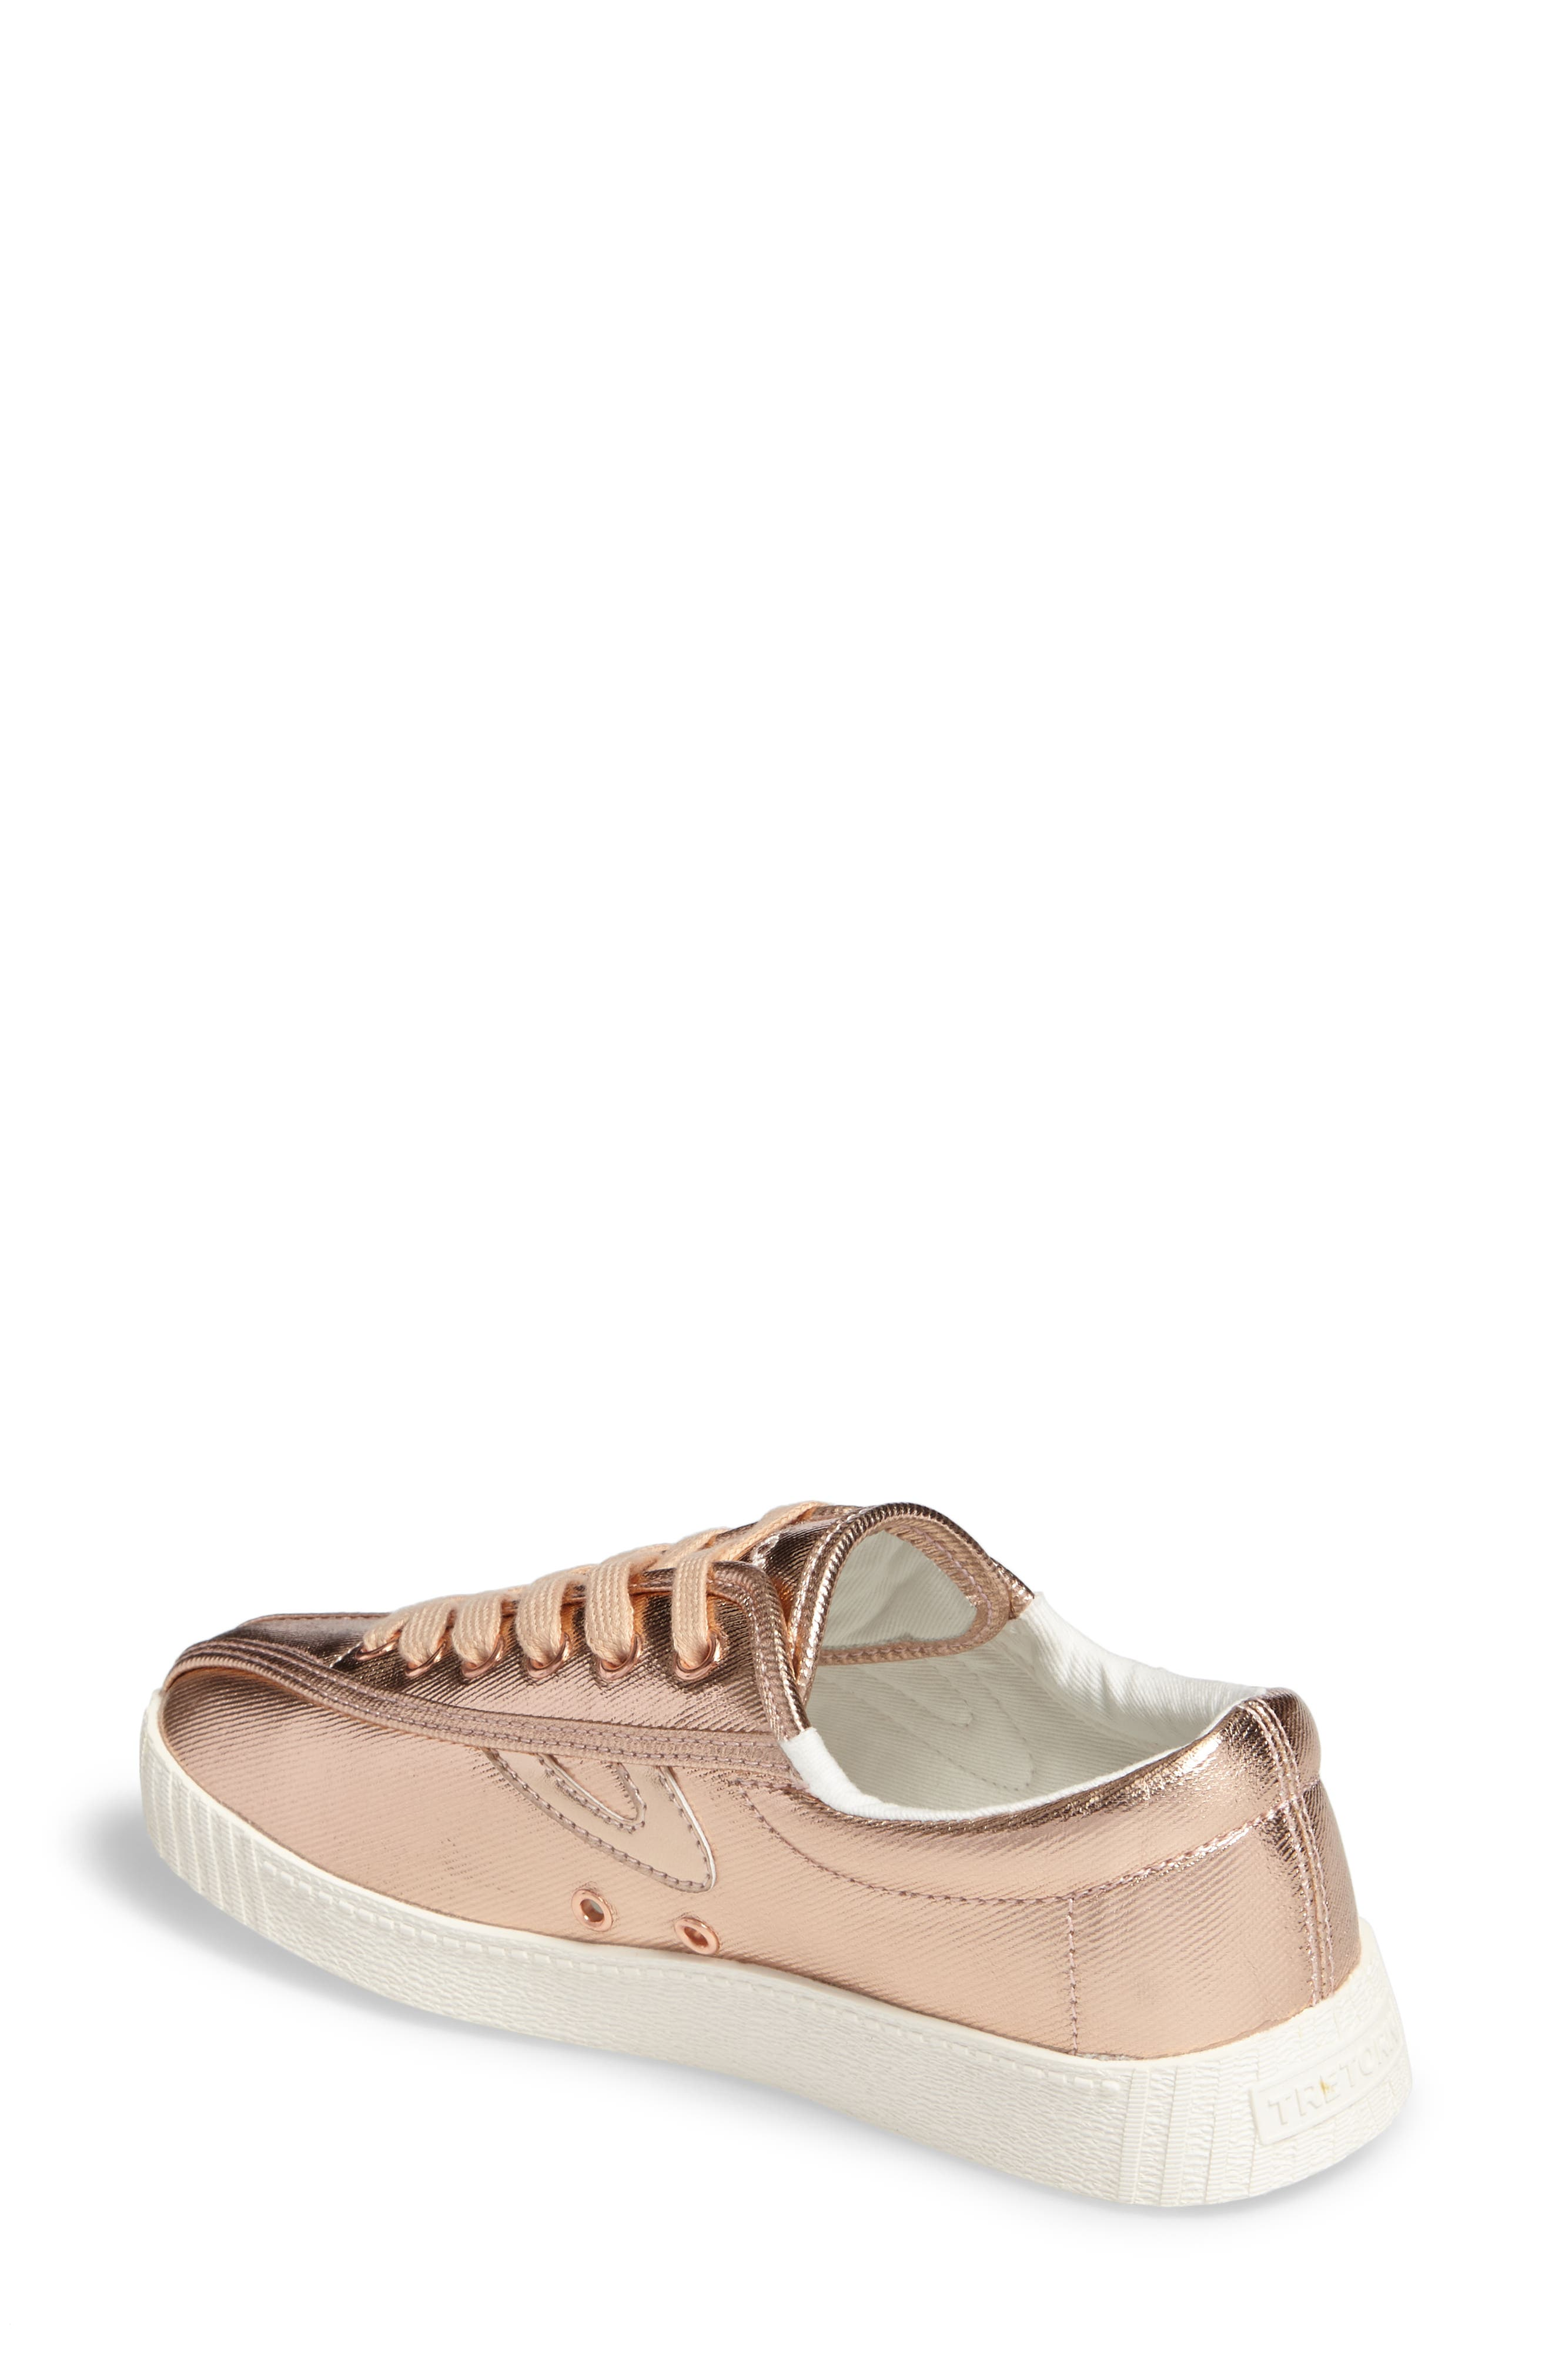 Nylite Plus Sneaker,                             Alternate thumbnail 2, color,                             Rose Gold/ Rose Gold